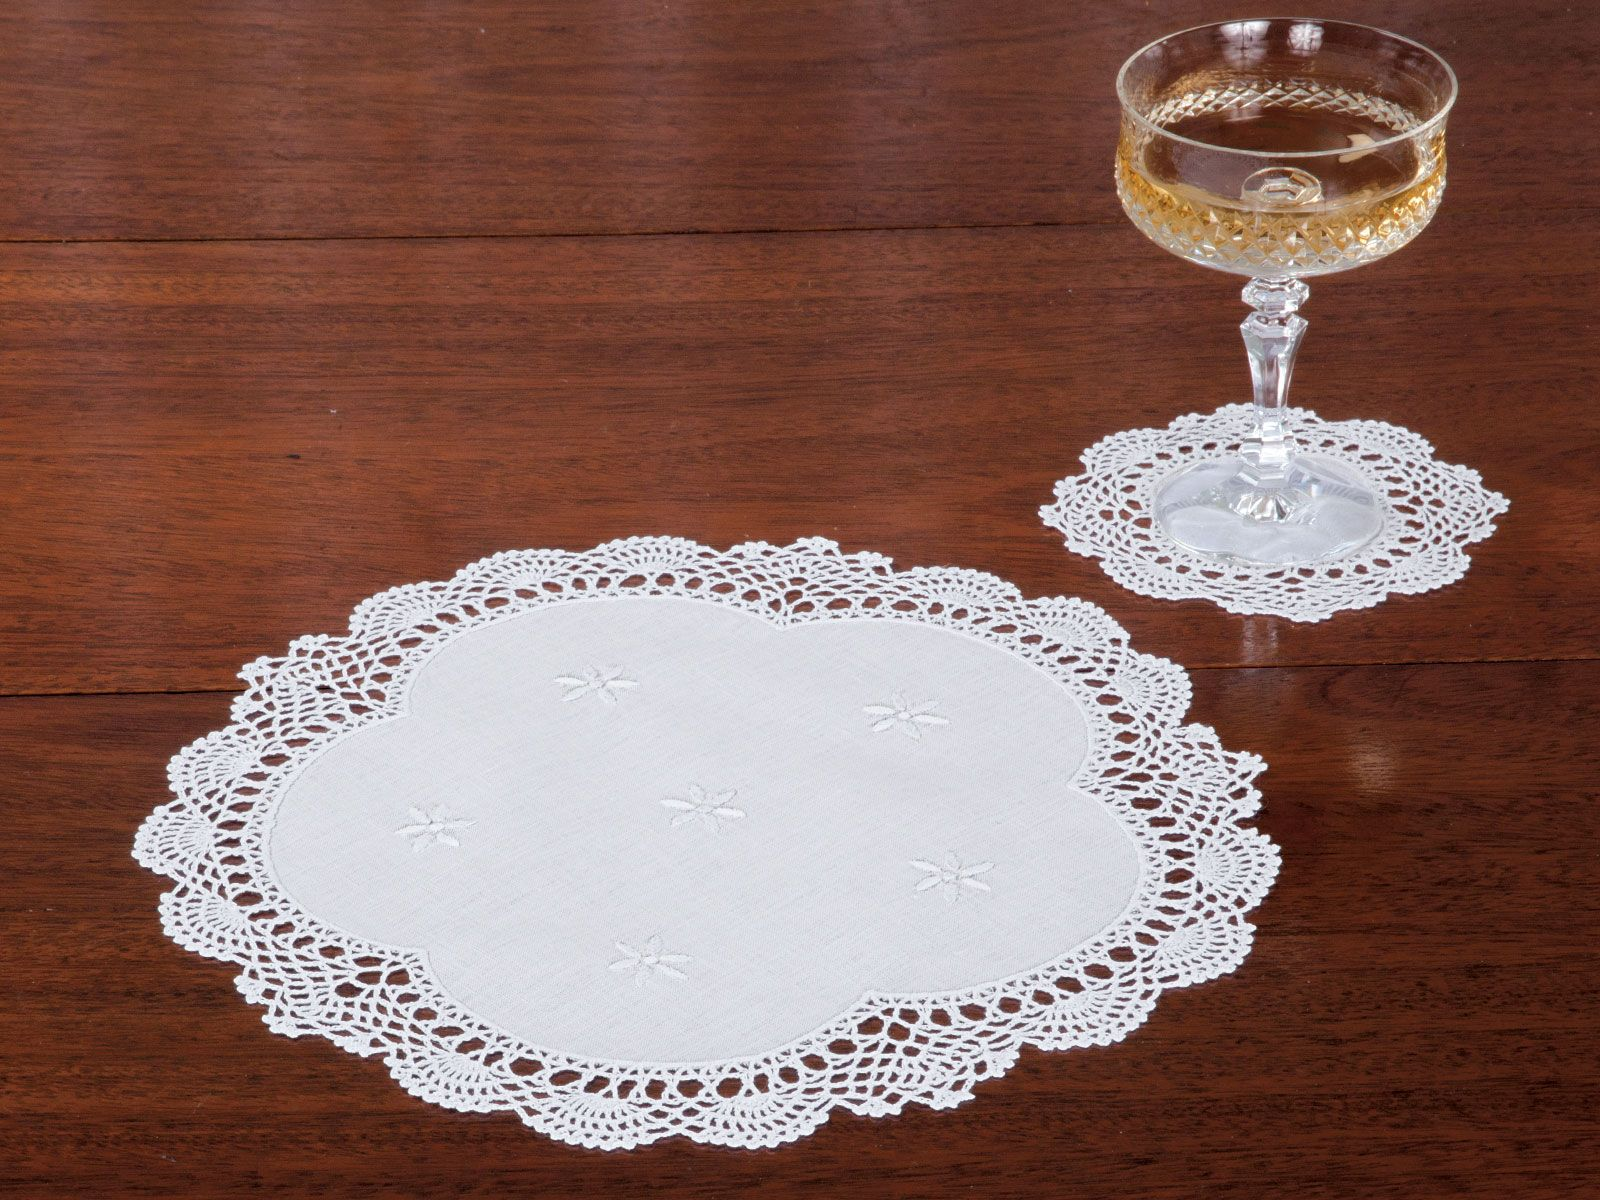 Queen Anne Doilies. Recalling the refinements of days long gone by, these fine Italian linen doilies are made to be enjoyed today and treasured tomorrow. Exquisitely crafted with scalloped hand-crocheted borders and hand-embroidered daisies in the center, they turn any place you put them into a thing of beauty. Imported in White in a full range of sizes.  #TableLinen #Doily #schweitzerlinen